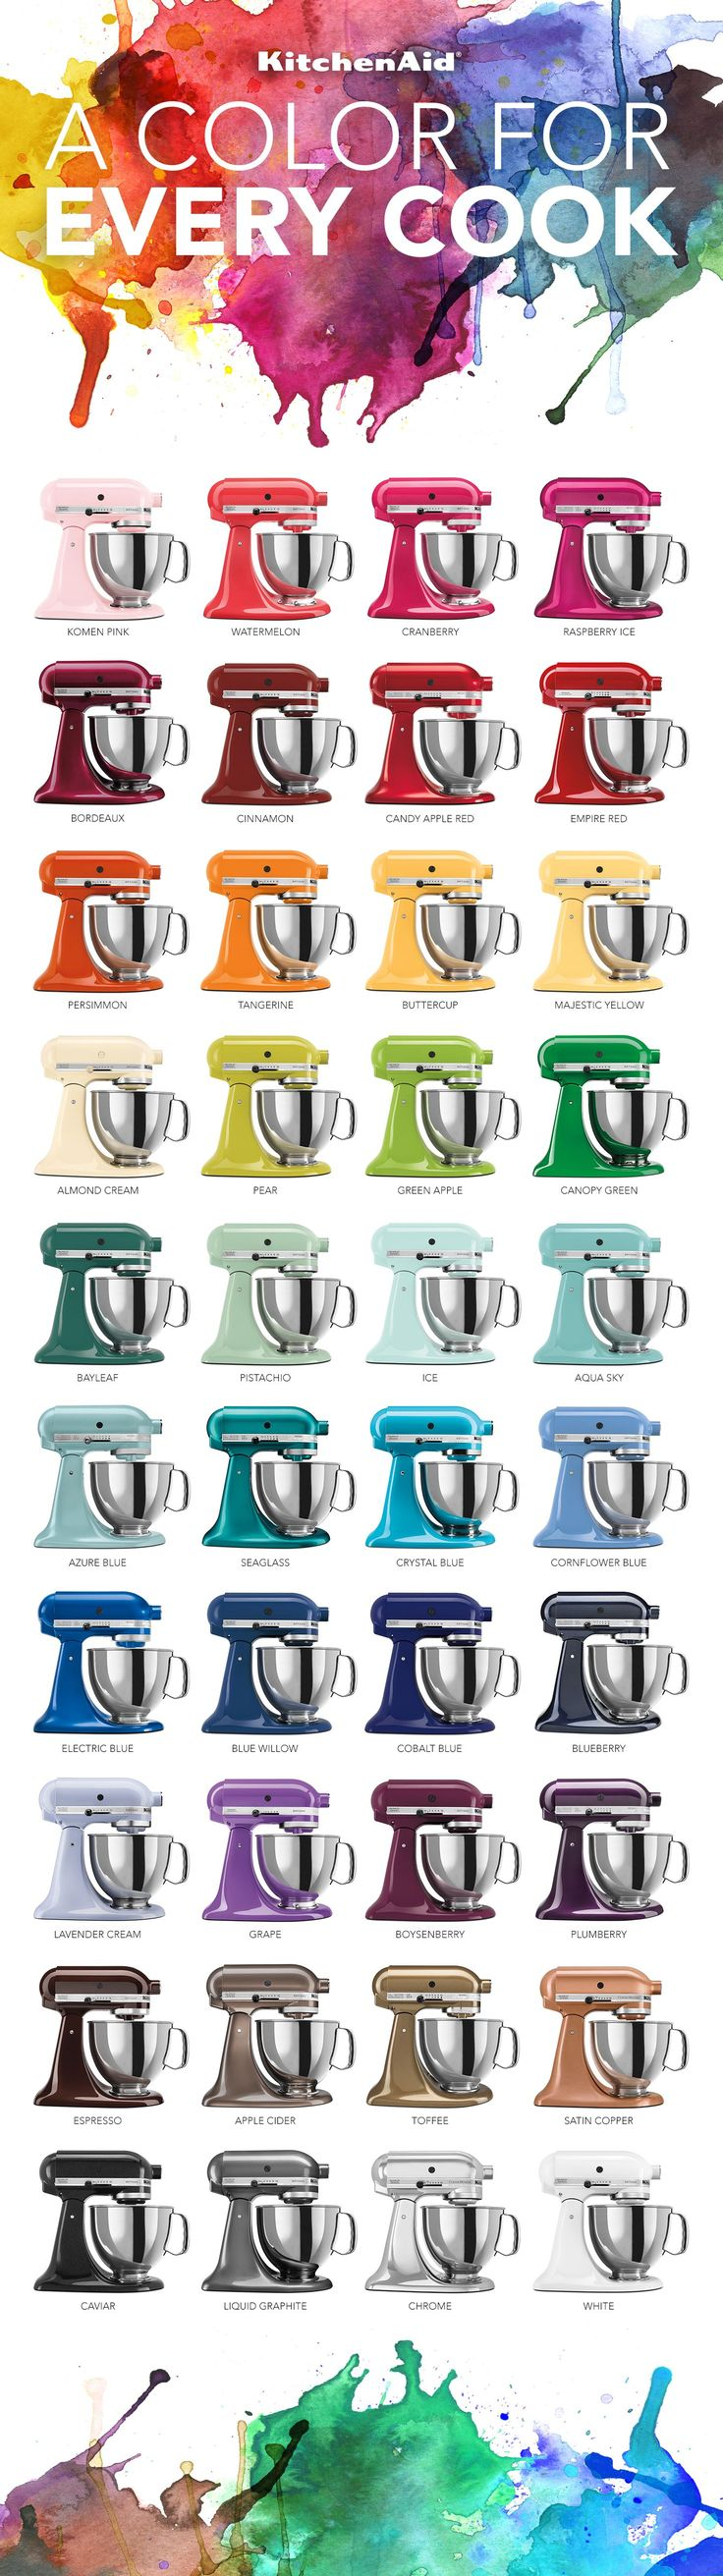 Best 25+ KitchenAid ideas on Pinterest | Kitchenaid attachments ...